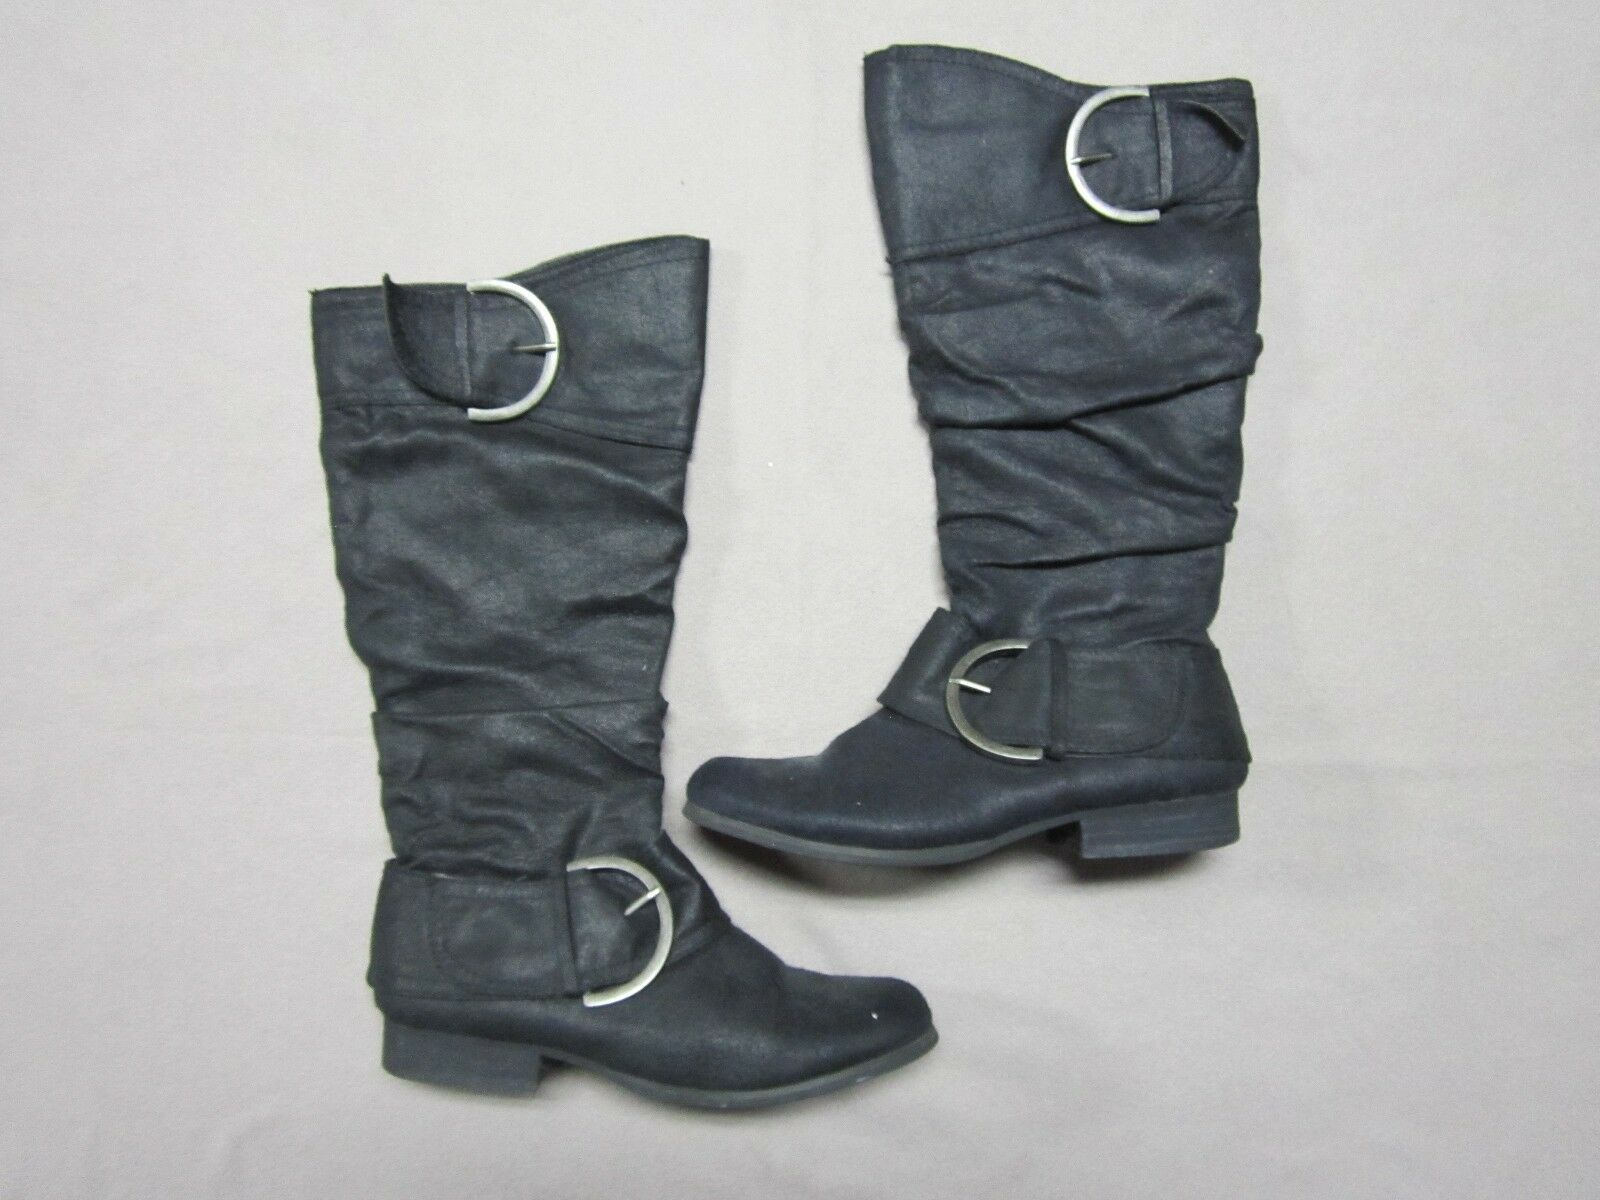 NAUGHTY MONKEY SIZE WOMENS BLACK HIGH ZIP UP BOOTS SHOES SIZE MONKEY 7.5 GENTLY PREOWNED 3e7baa